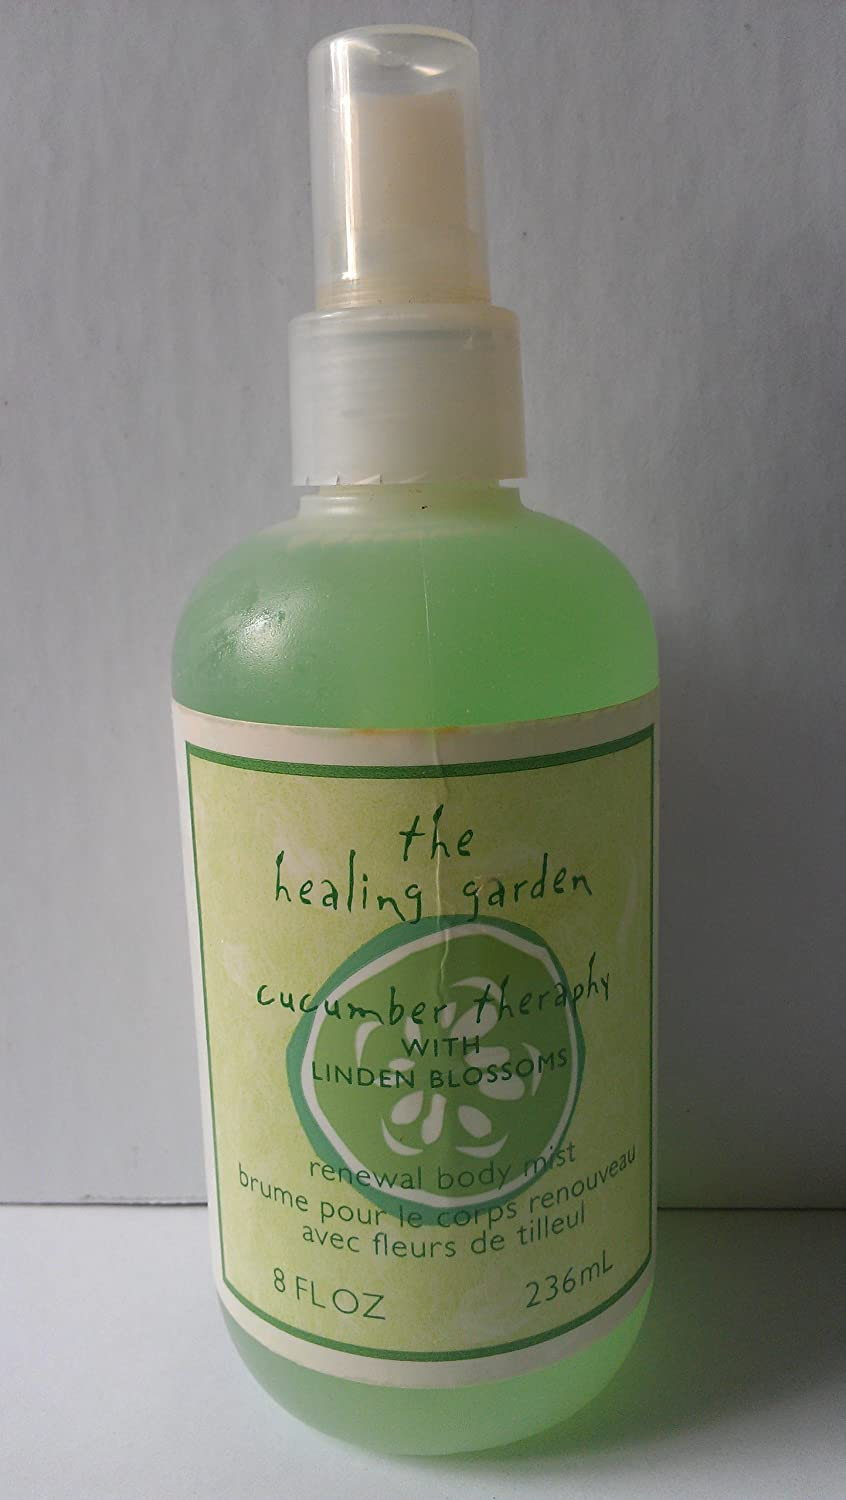 The Healing Garden Cucumber Therapy Renewal Body Mist w/Linden Blossoms 8 oz (2 Pack)